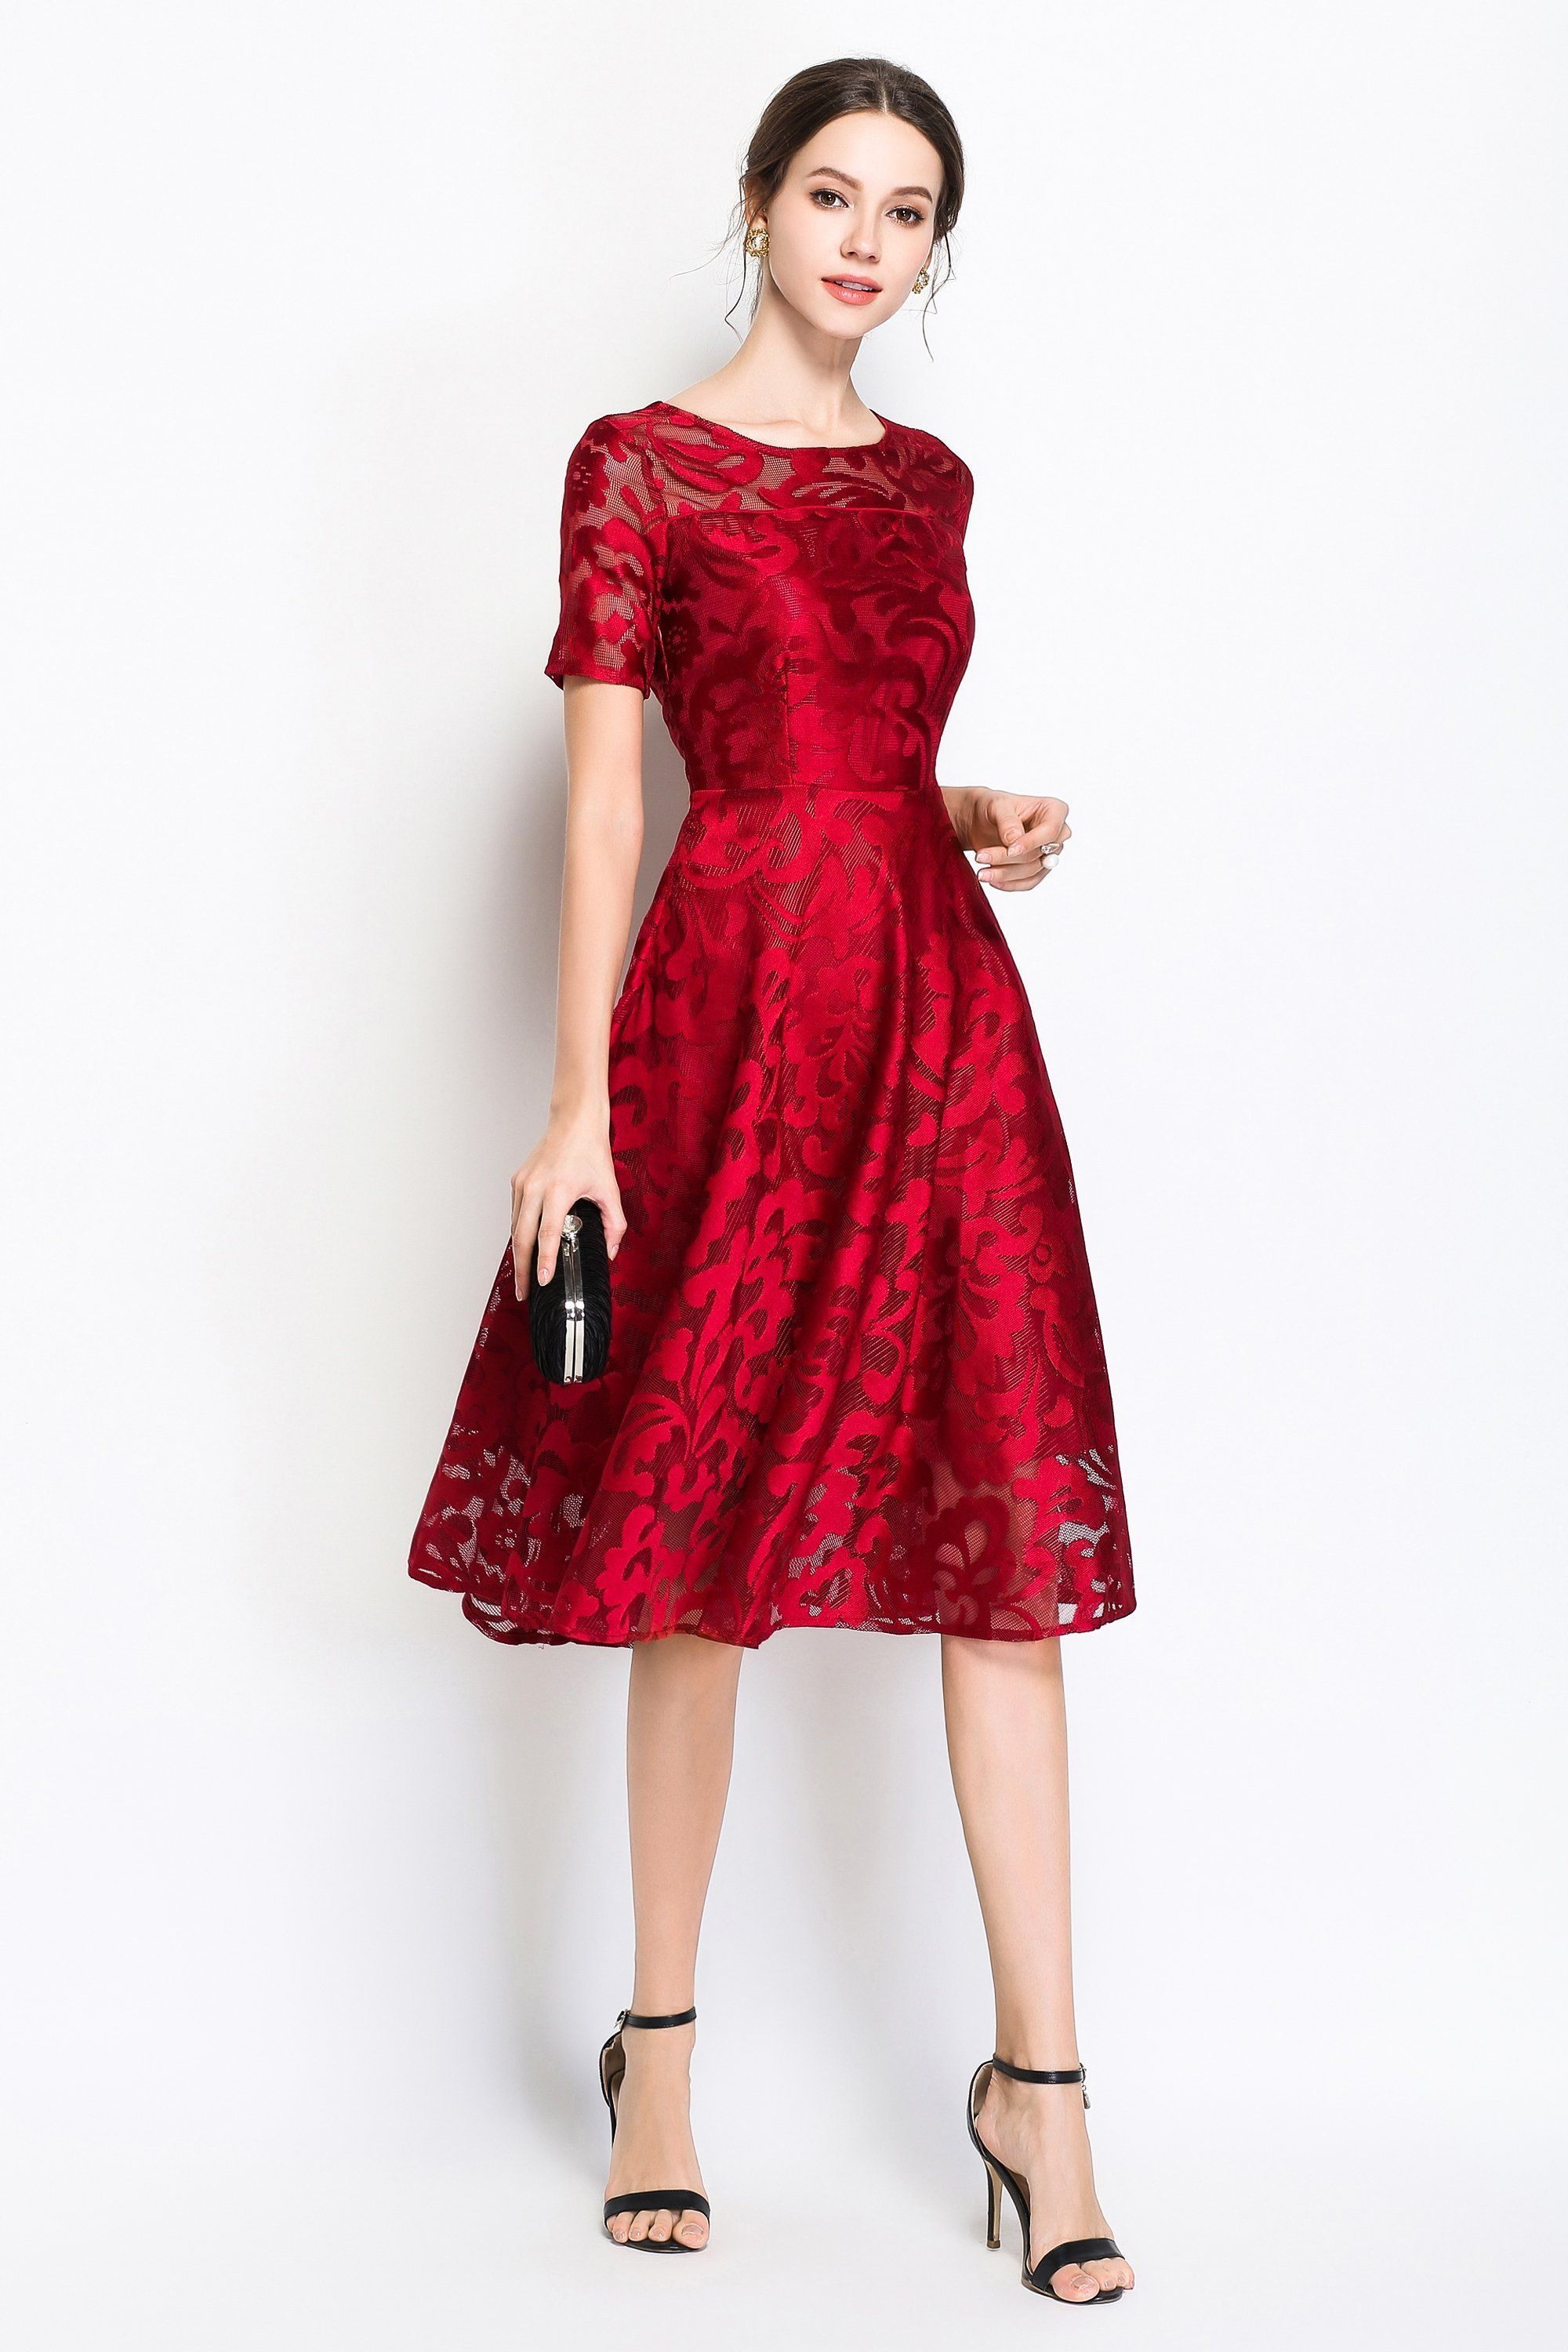 25dff0088fba6 Midi Dress in 2019   Best outfits I've seen   Red holiday dress ...